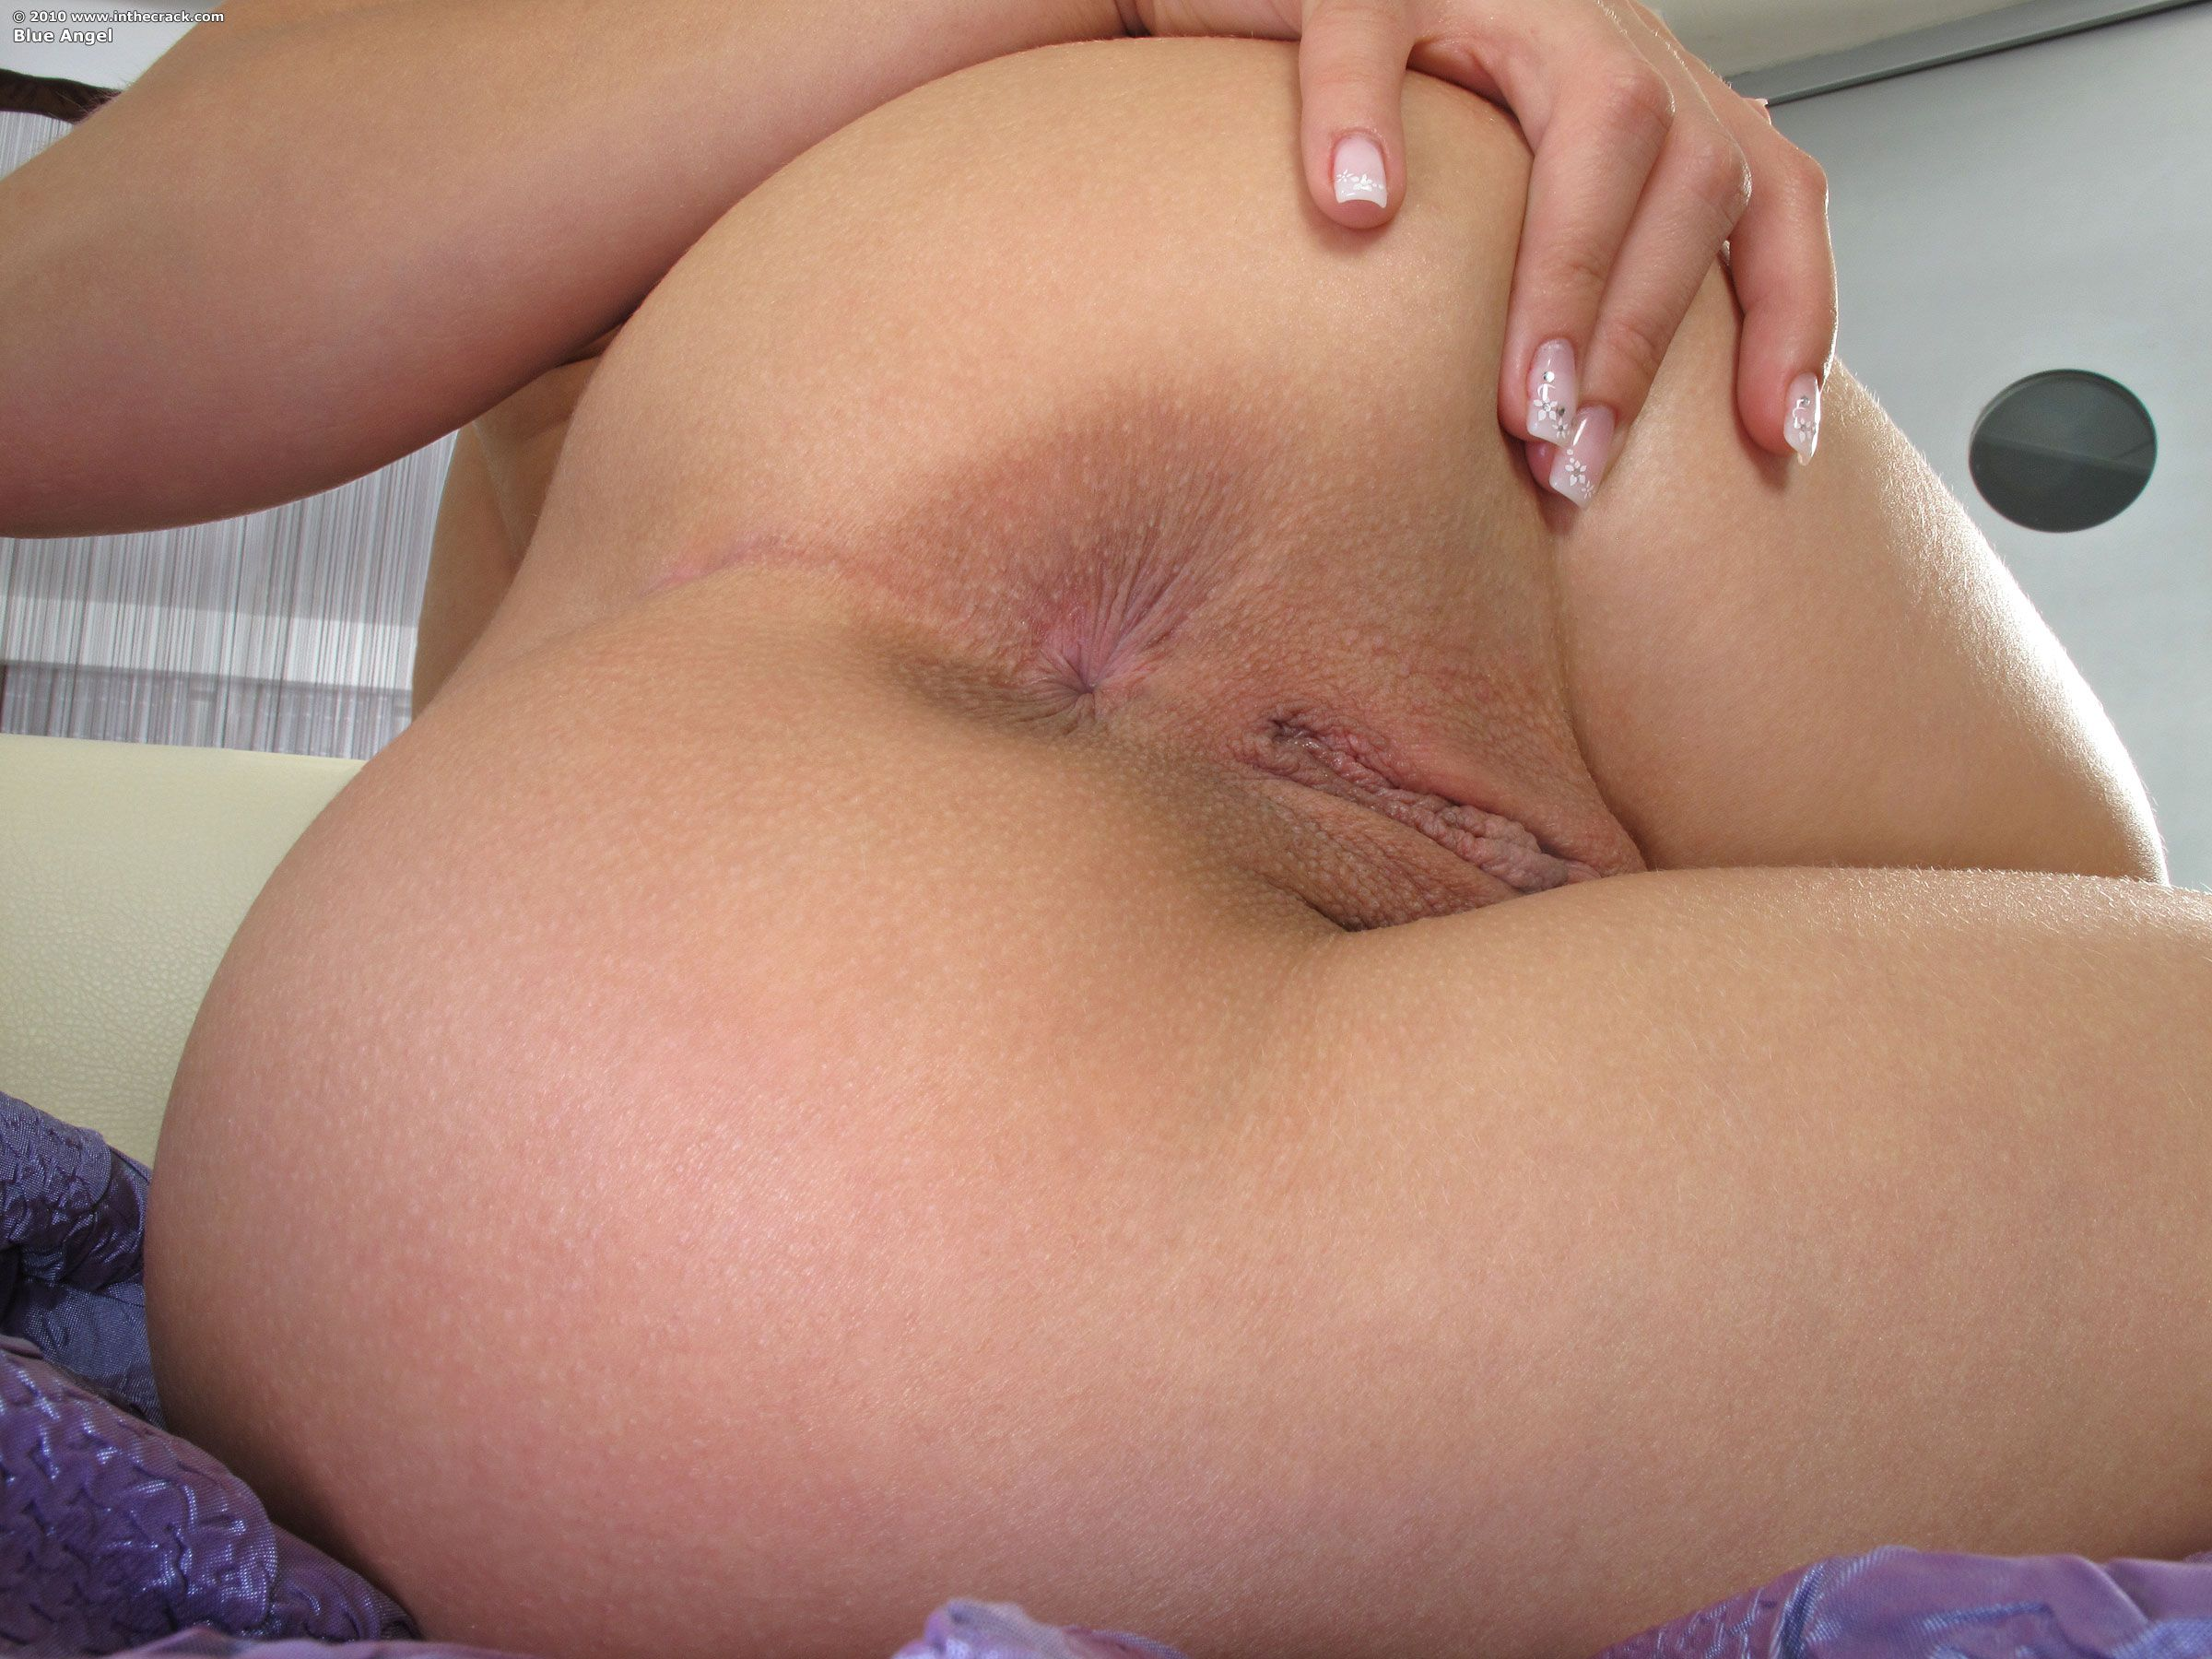 Shaved pussy straming video